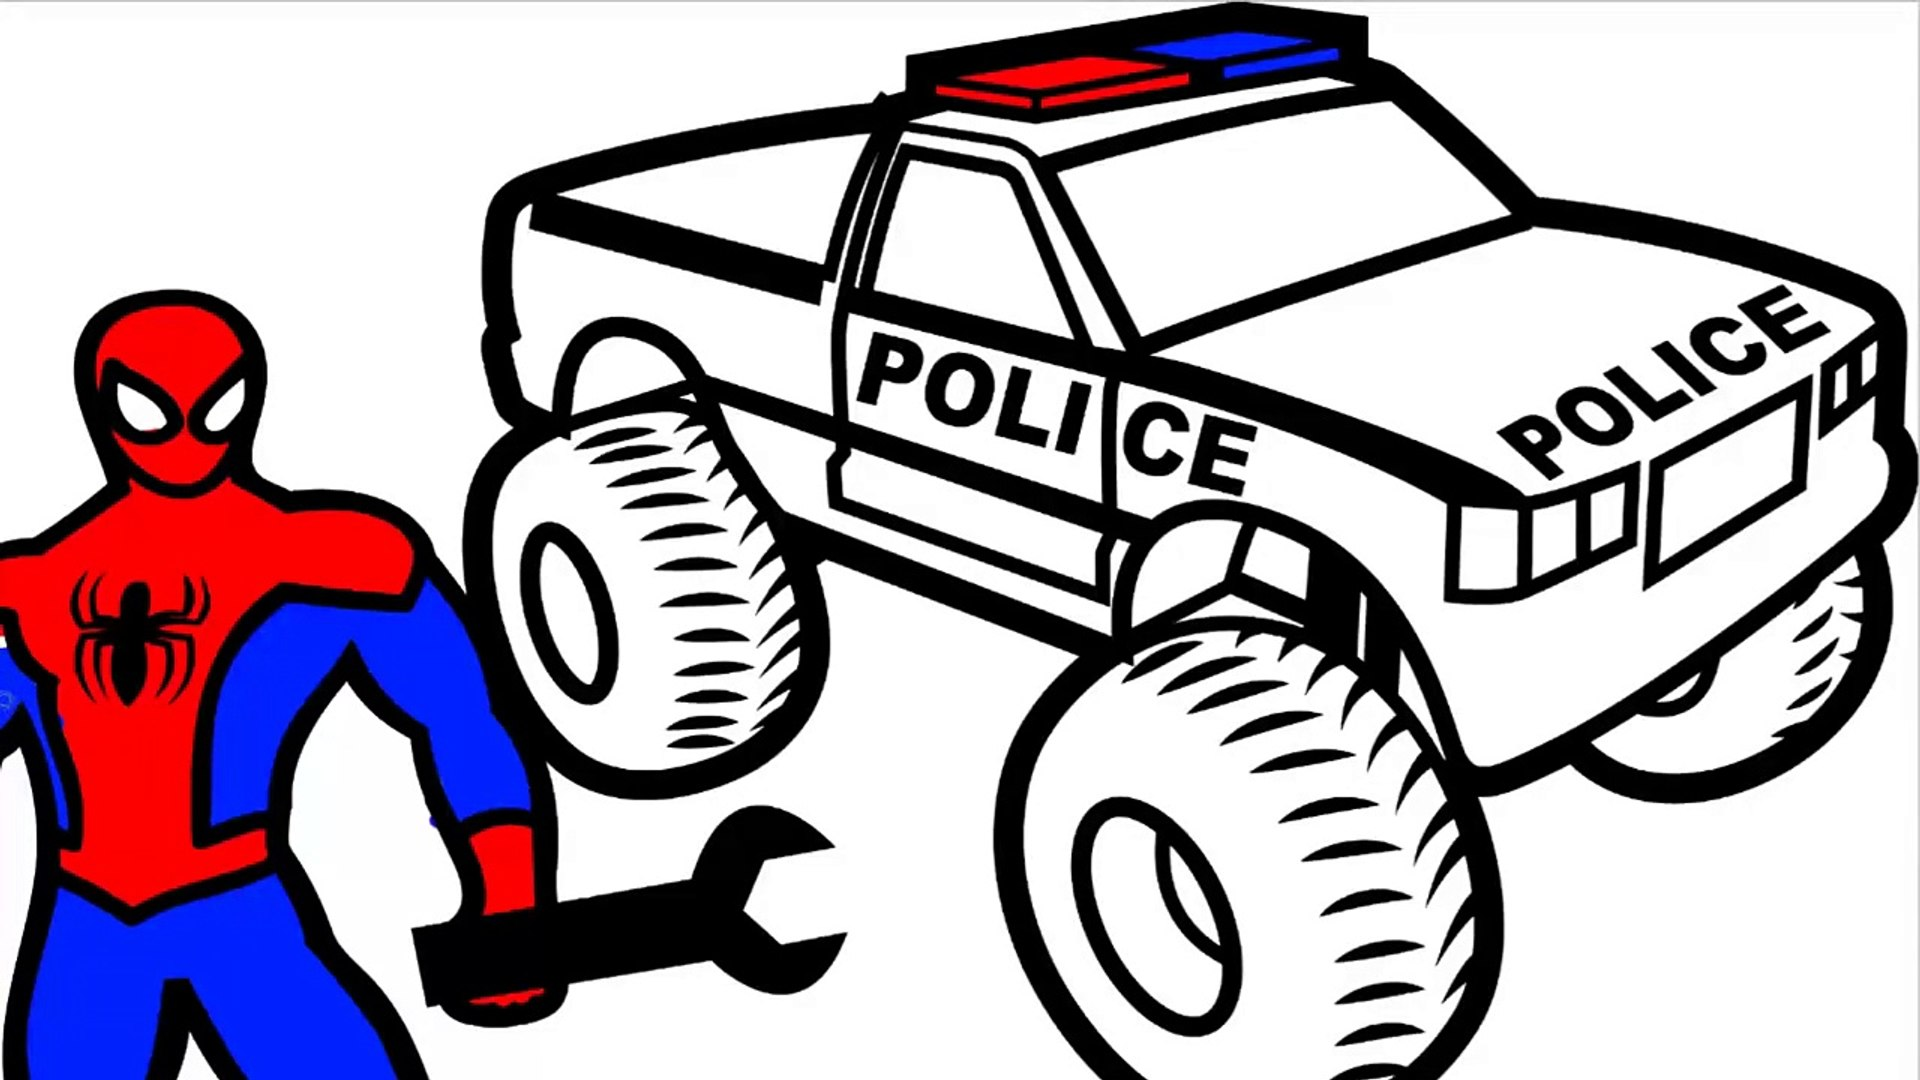 - Spiderman Repair Police Monster Truck Coloring Pages For Kids